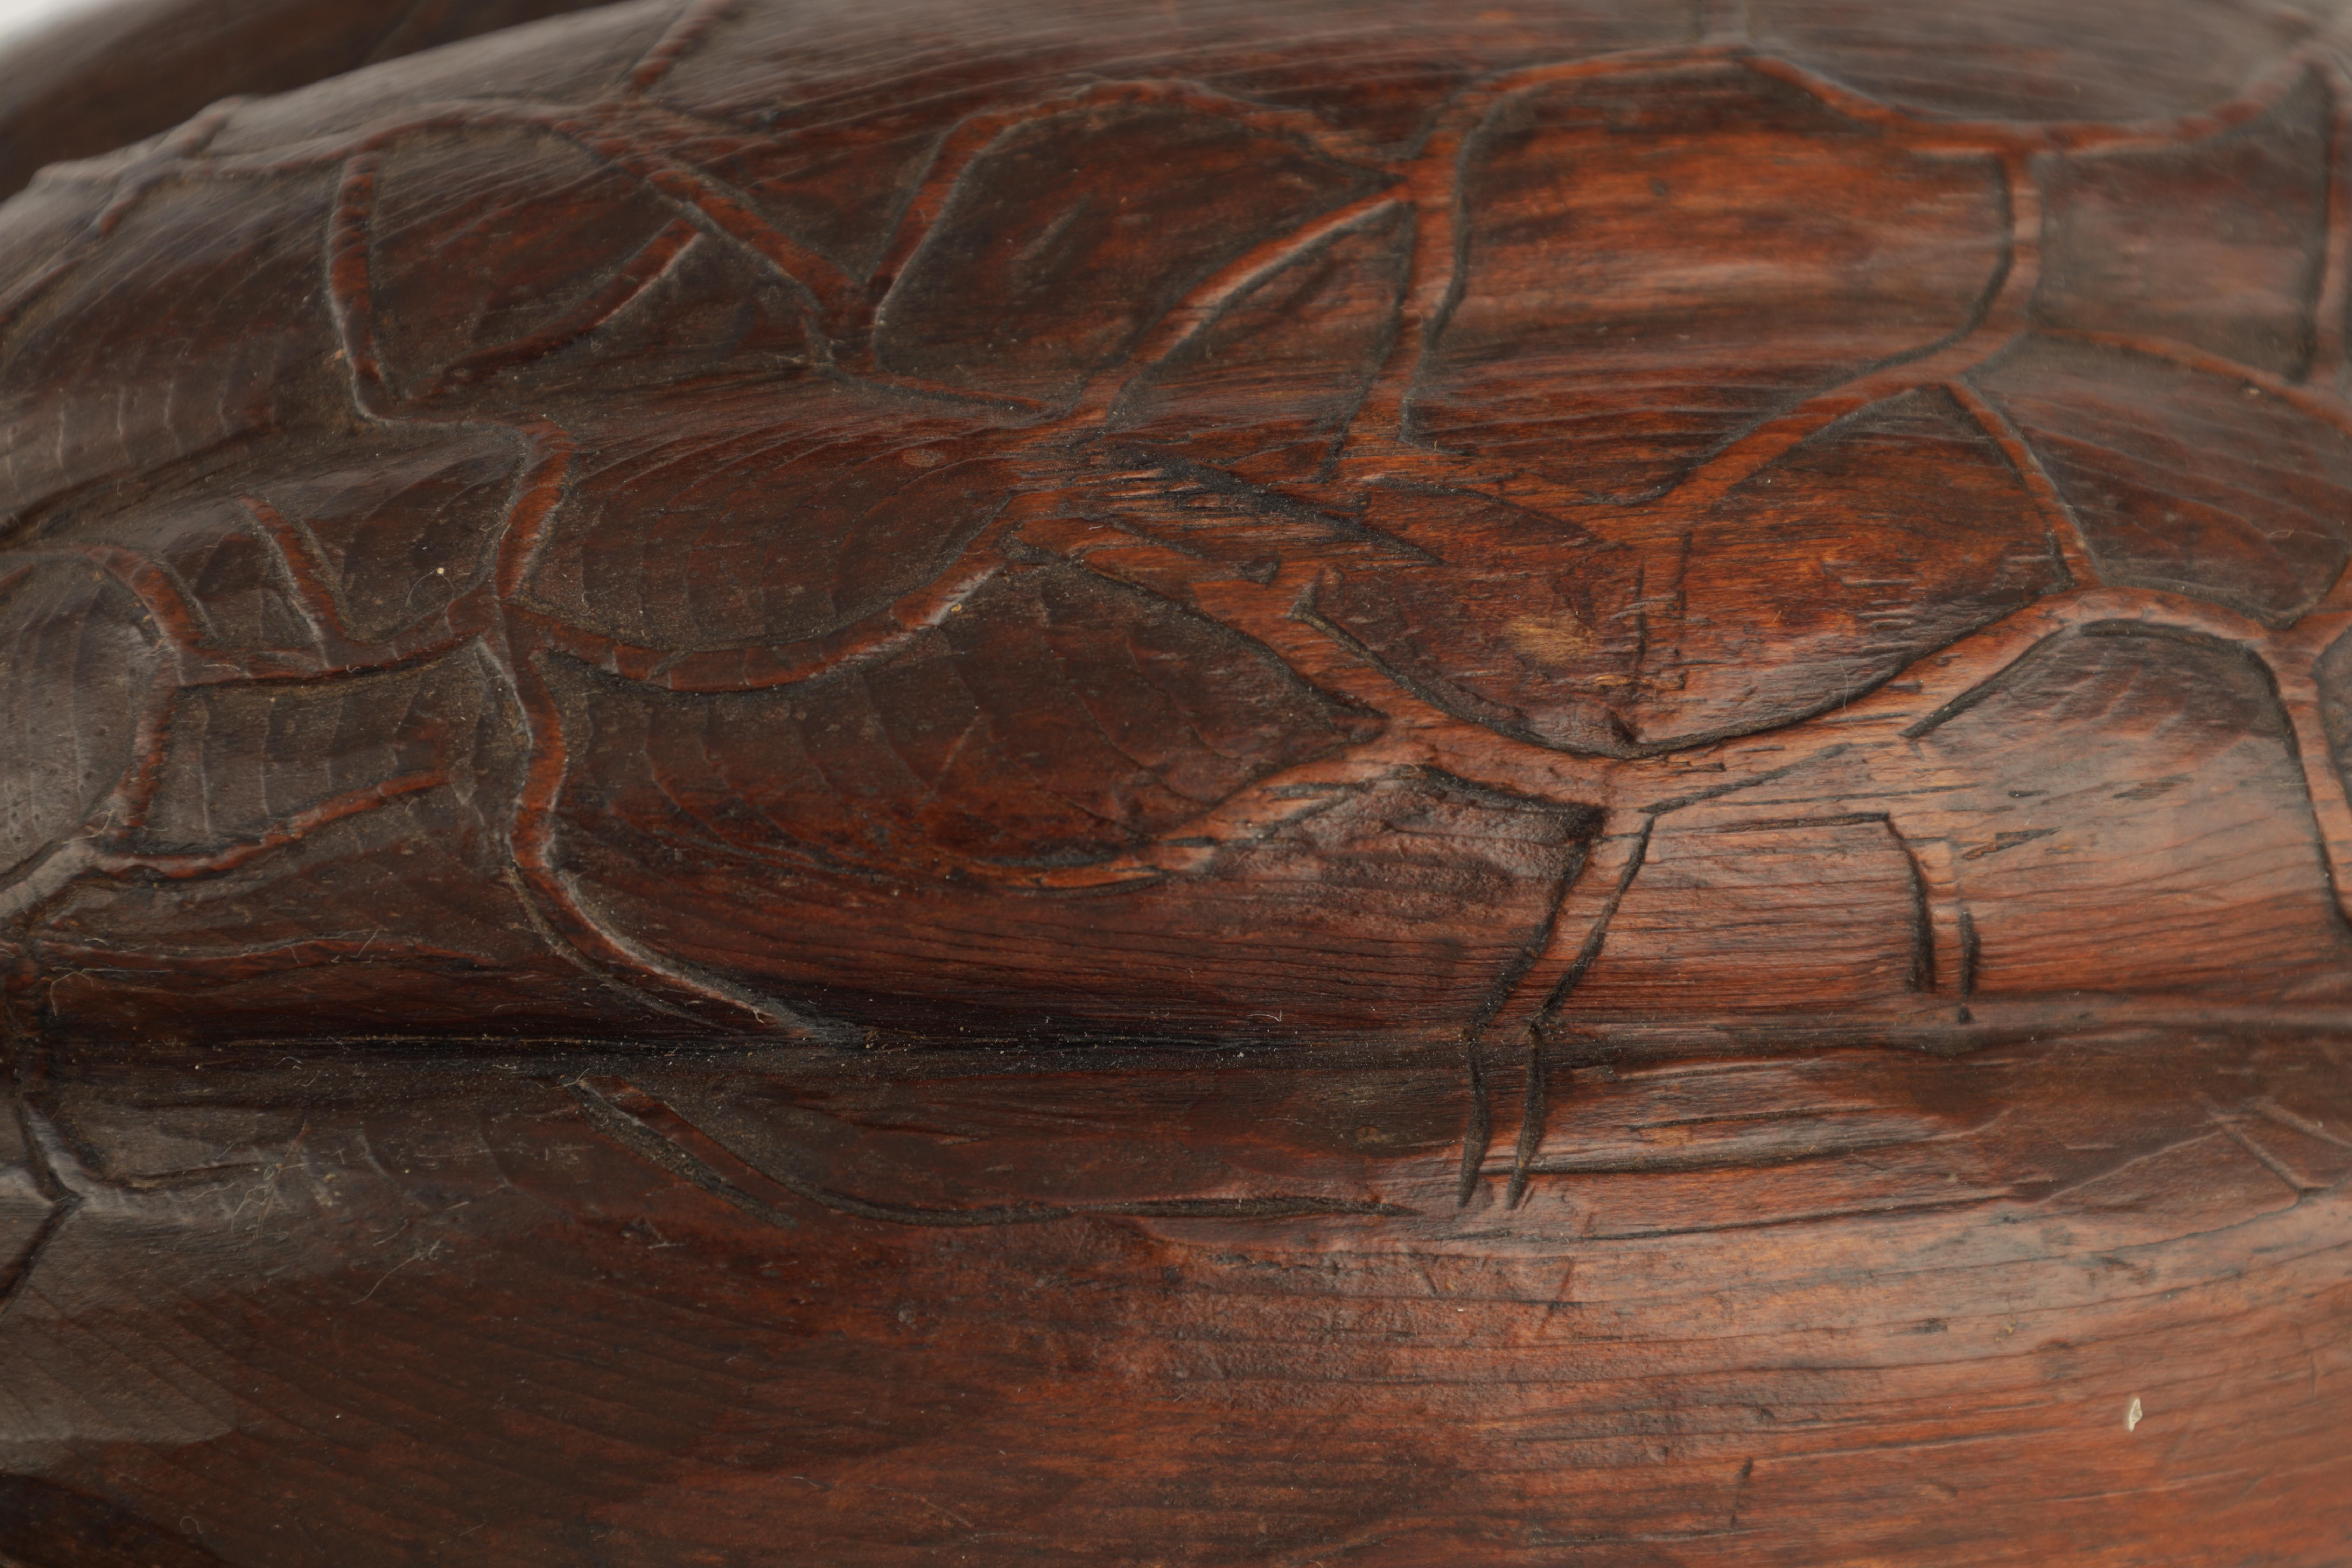 A 19TH CENTURY CARVED OAK SCULPTURE modelled as a pumpkin on a naturalistic base 23.5cm wide, 13cm - Image 4 of 7